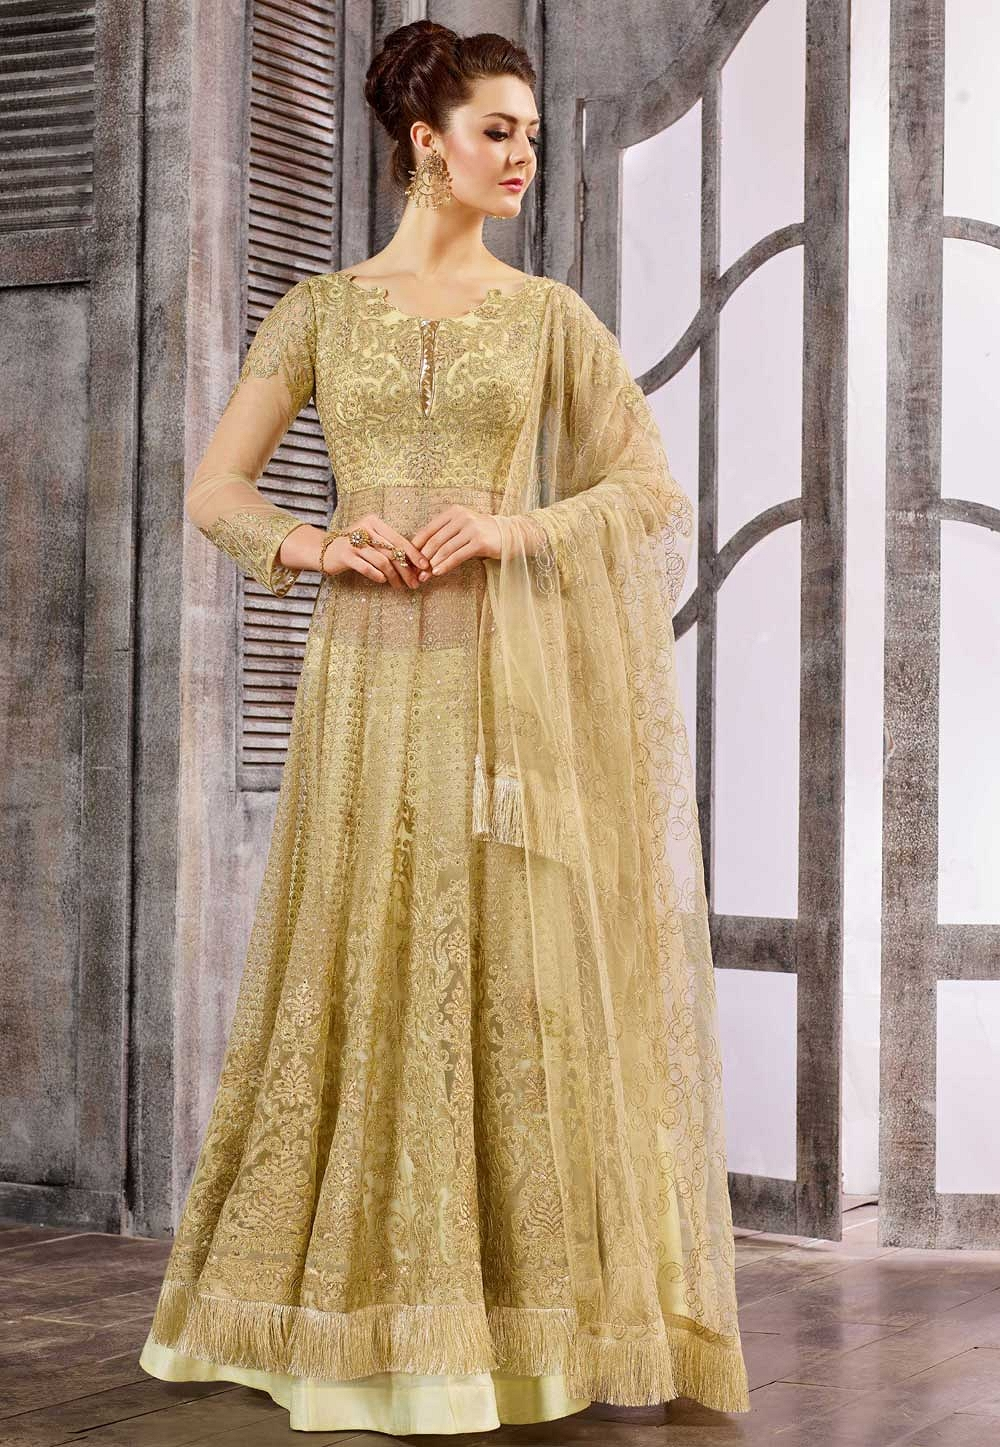 d9bdaa22b1 Indian ethnic shopping store, Indian ethnic clothing, Online clothing  shopping store, saree, lehenga choli, salwar kameez, kurta pyjama.